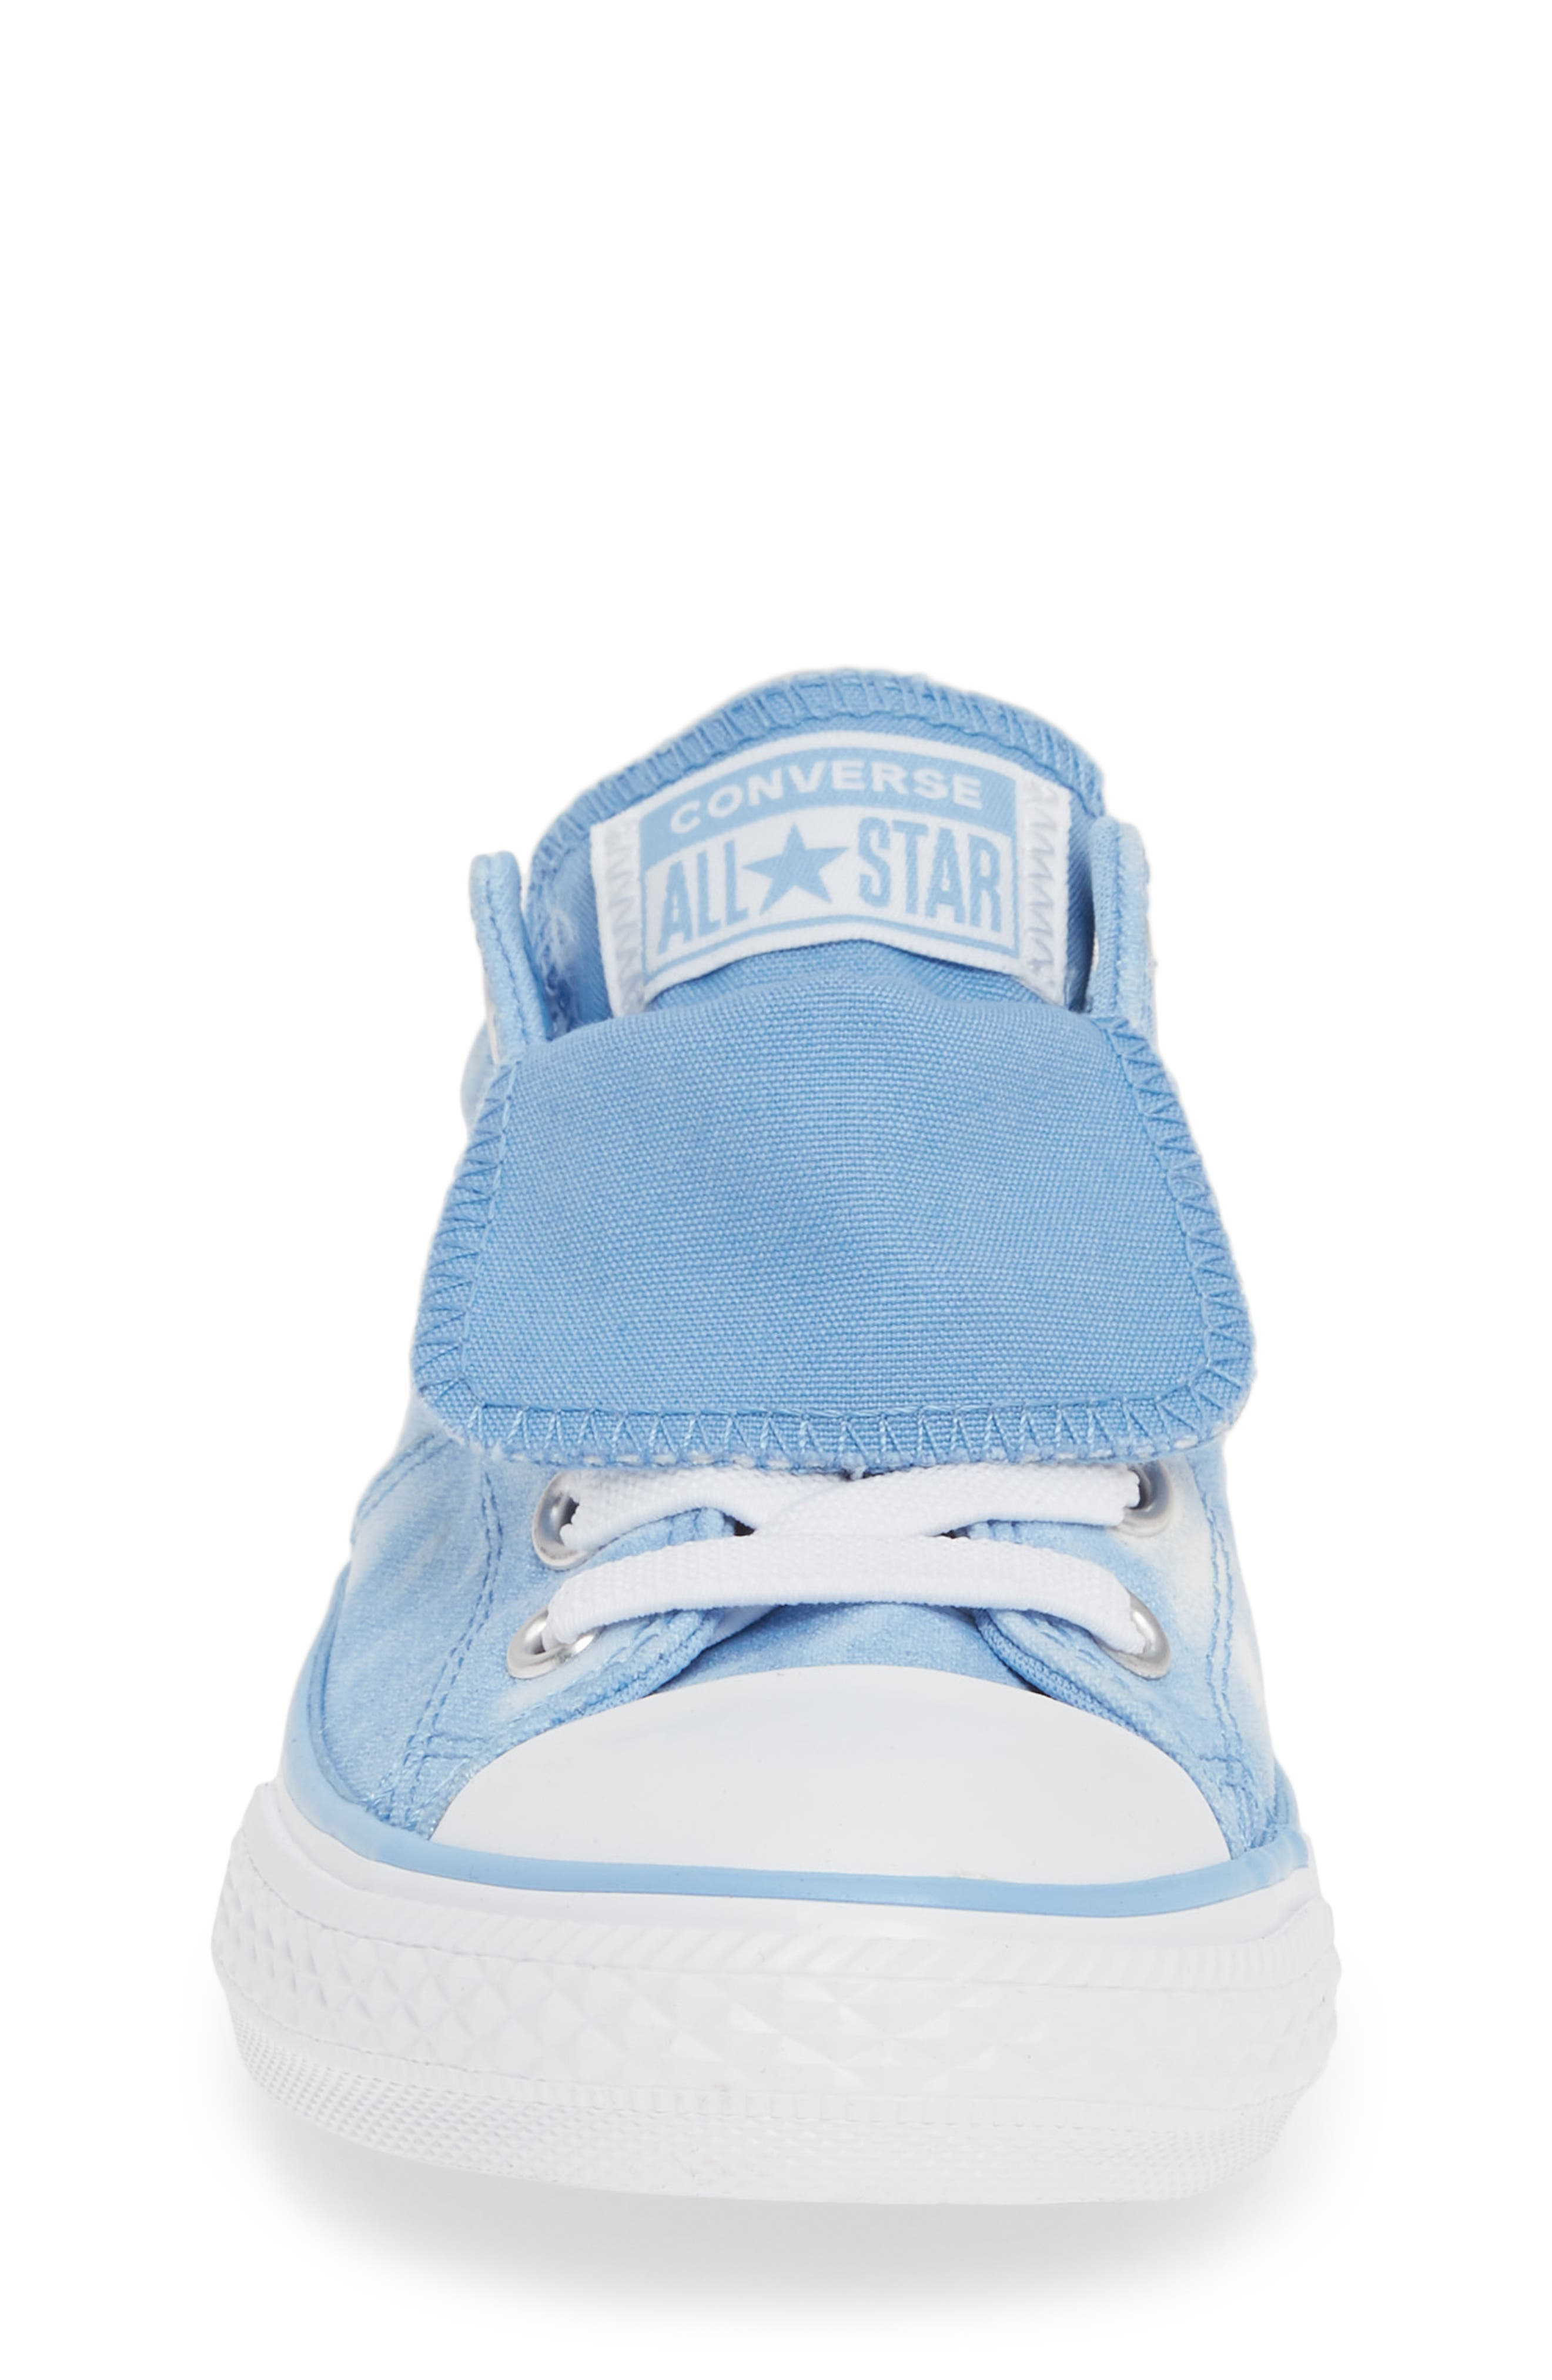 ,                             Chuck Taylor<sup>®</sup> All Star<sup>®</sup> Maddie Double Tongue Sneaker,                             Alternate thumbnail 22, color,                             472